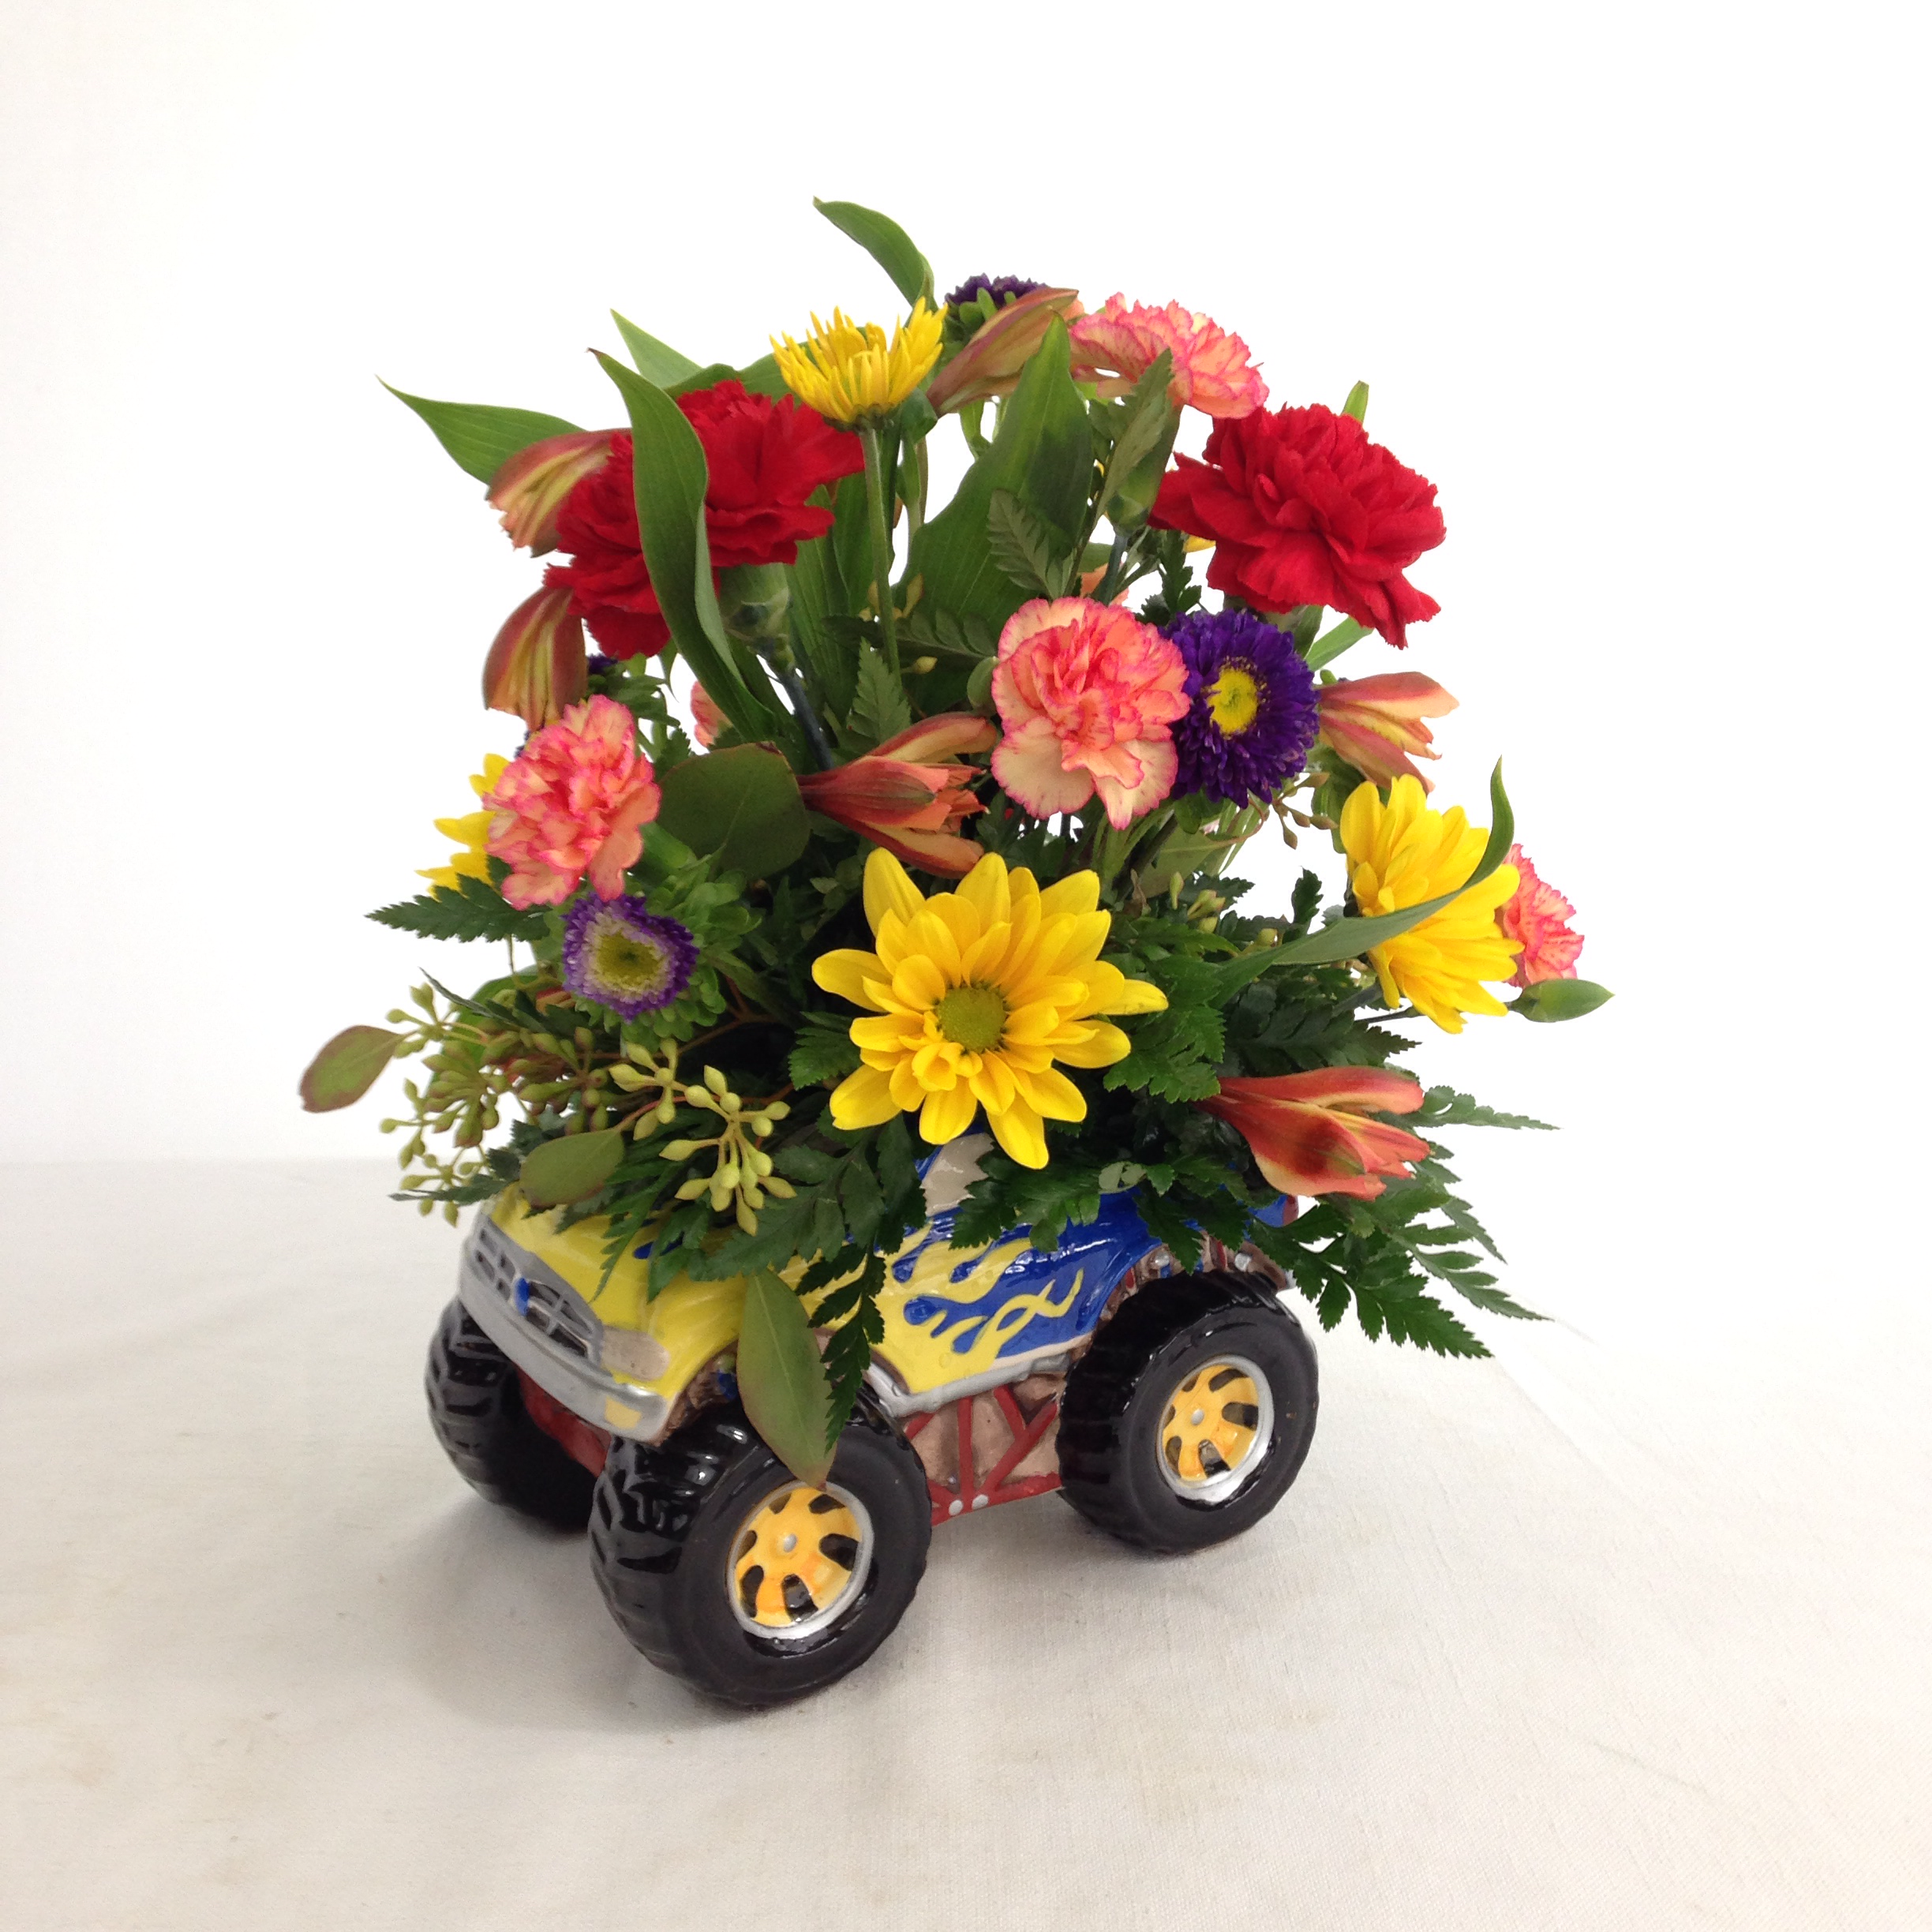 4-Wheelin' Bouquet